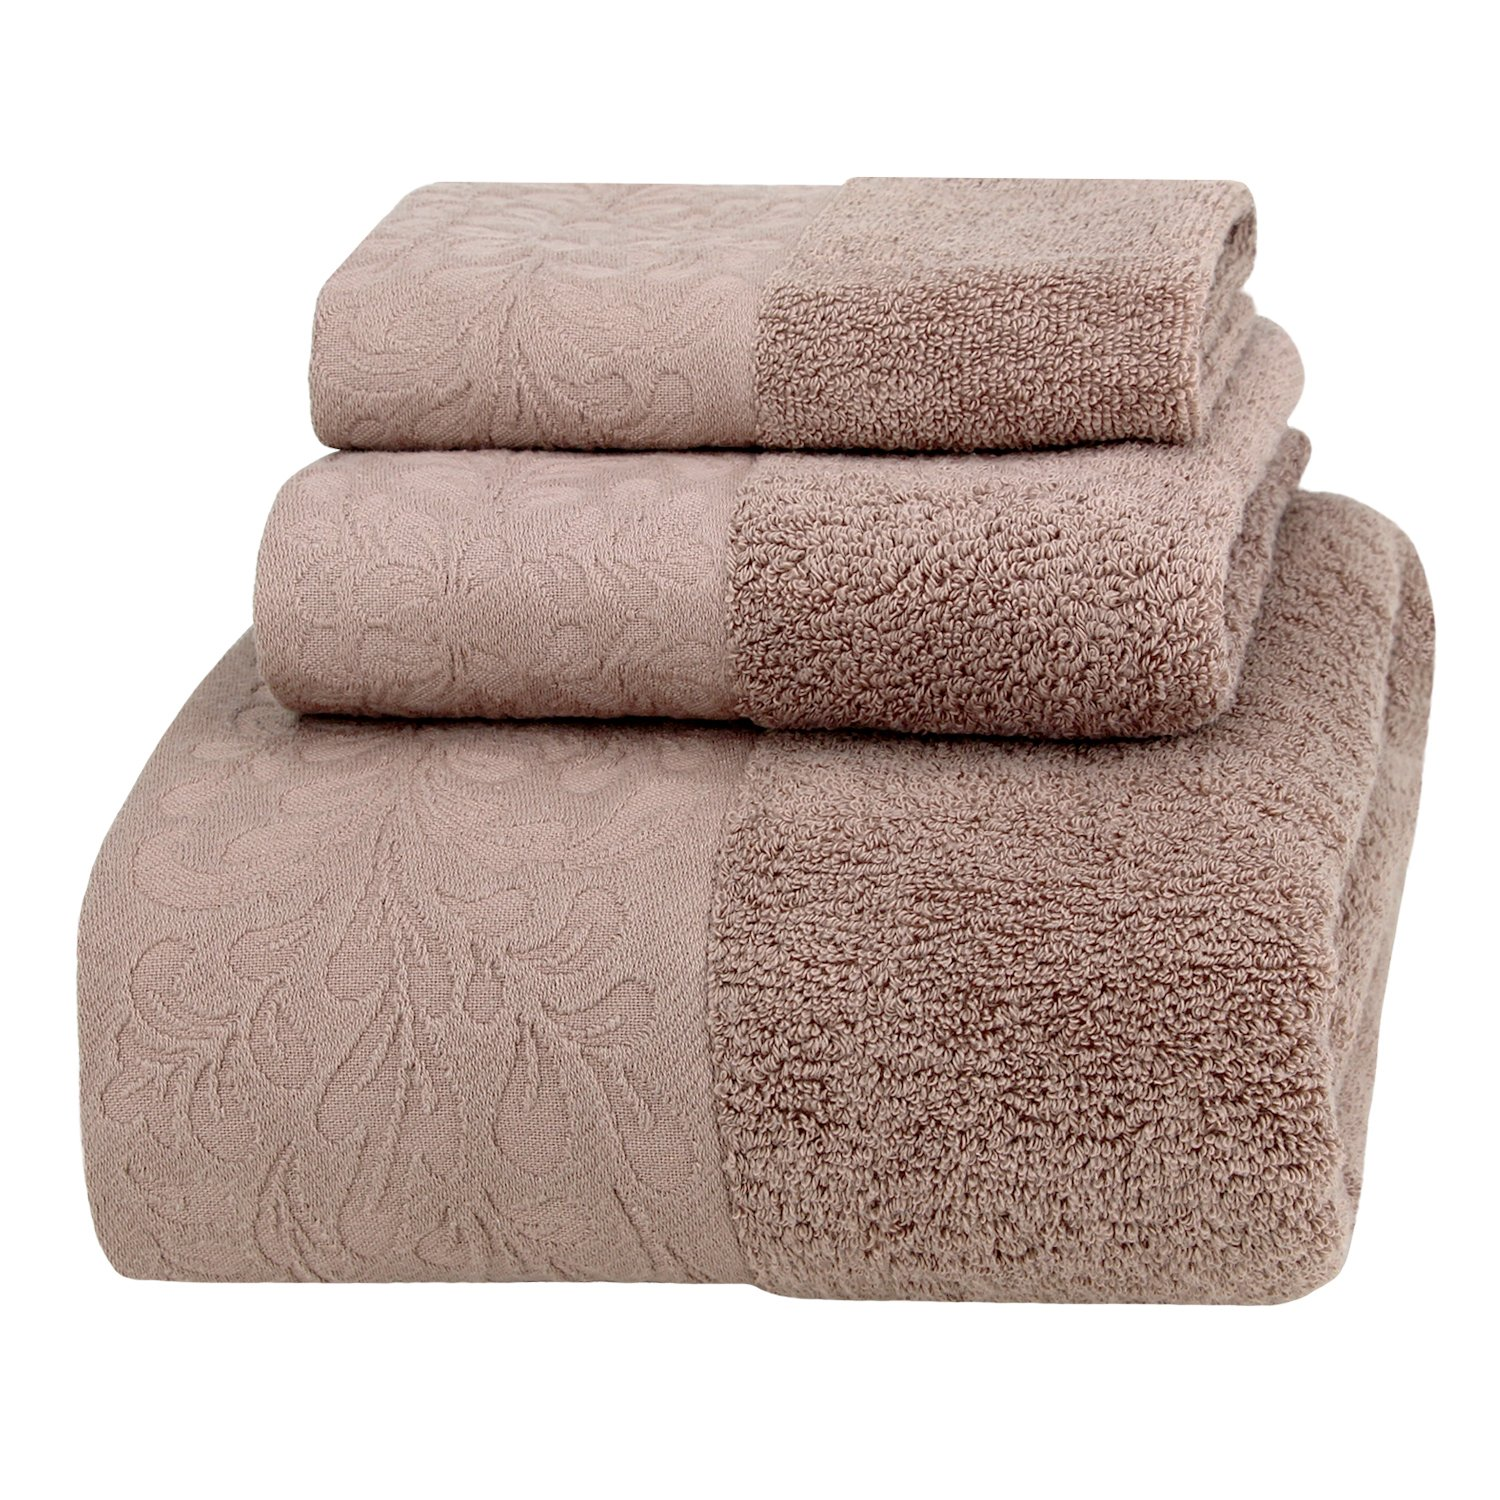 Premium Spa & Hotel Bath Towel Set, 100% Cotton, Highly Absorbent, Super Soft and Eco-friendly, 3 Pieces with 1 Oversized Bathroom Towel (28''x55''), 1 Hand Towel, 1 Washcloth. (Taupe Brown)